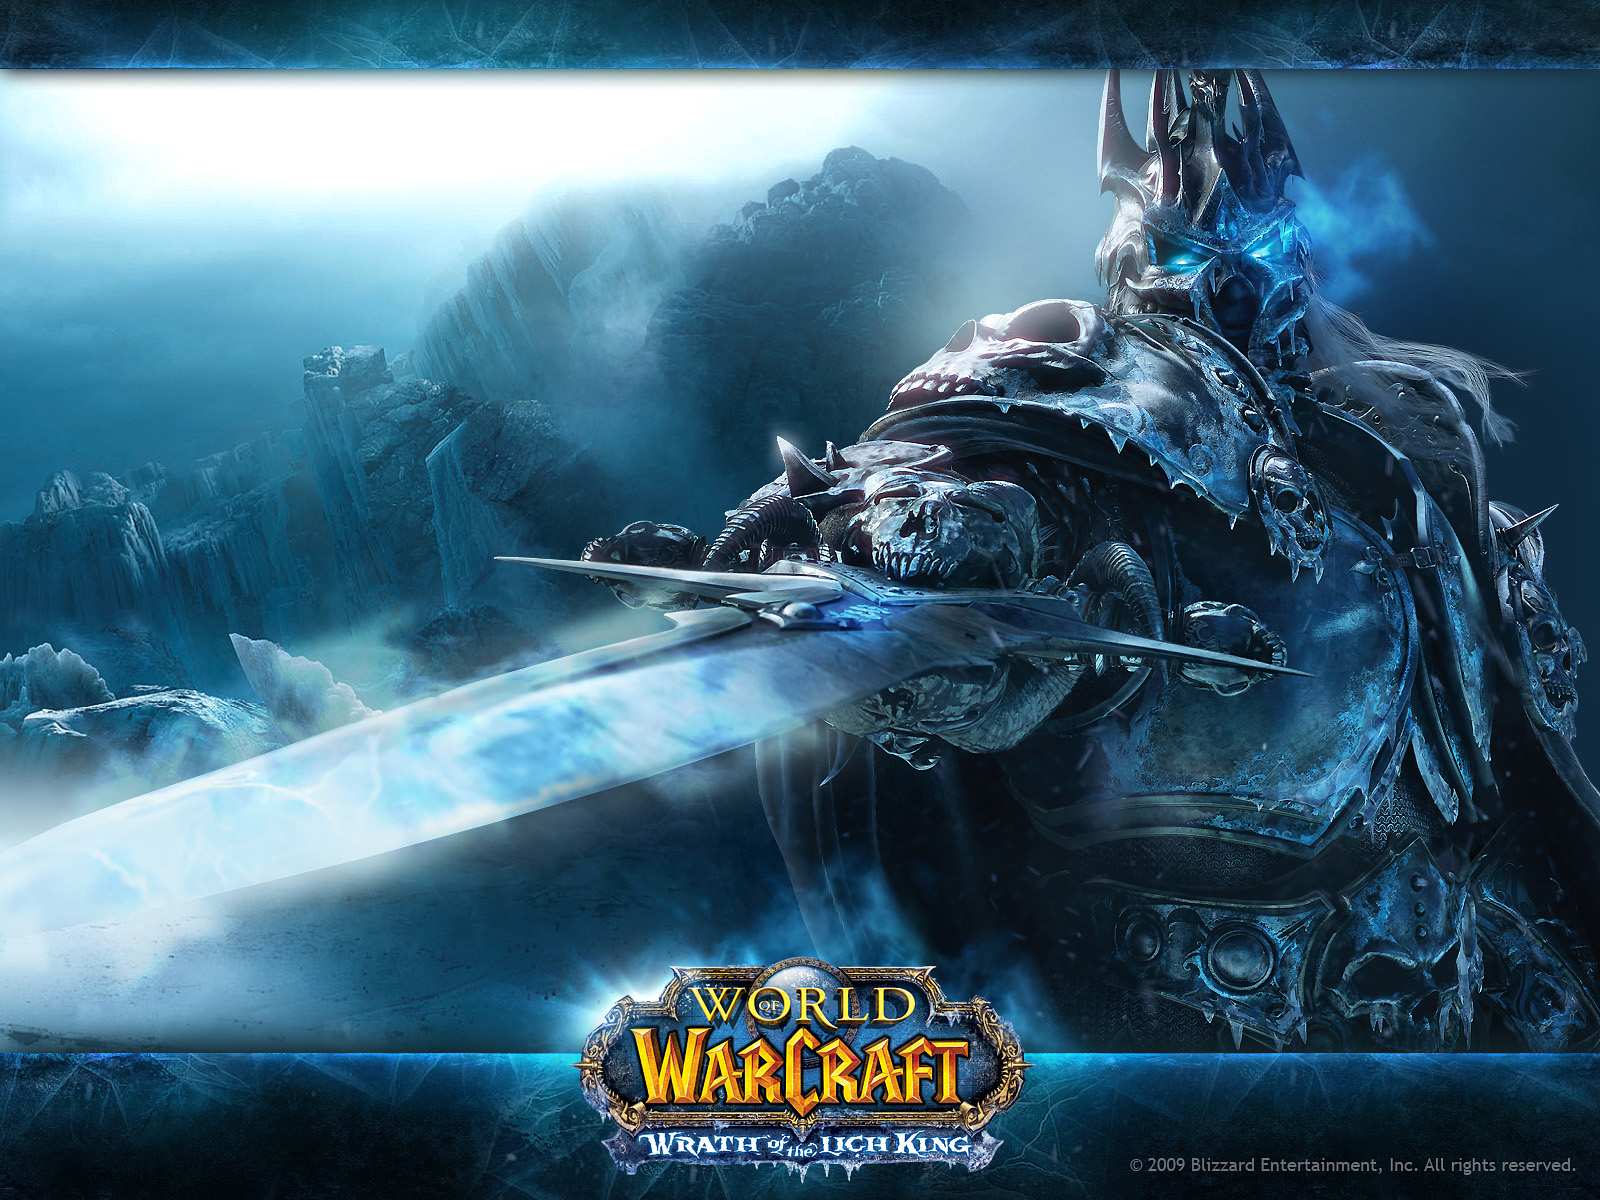 Blizzard EntertainmentWorld of Warcraft Wrath of the Lich King 1600x1200